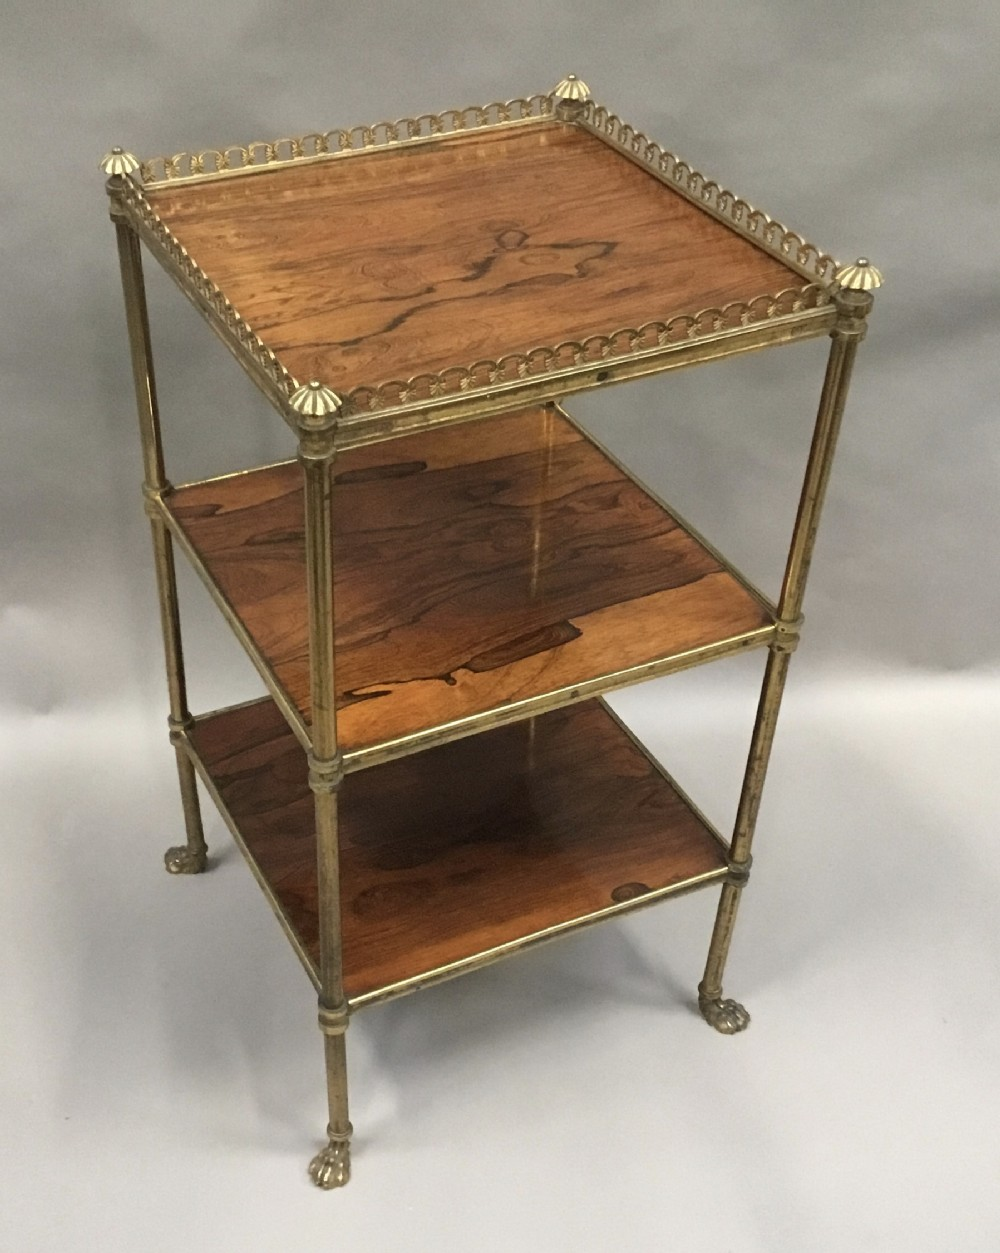 regency rosewood and gilt brass etagere whatnot